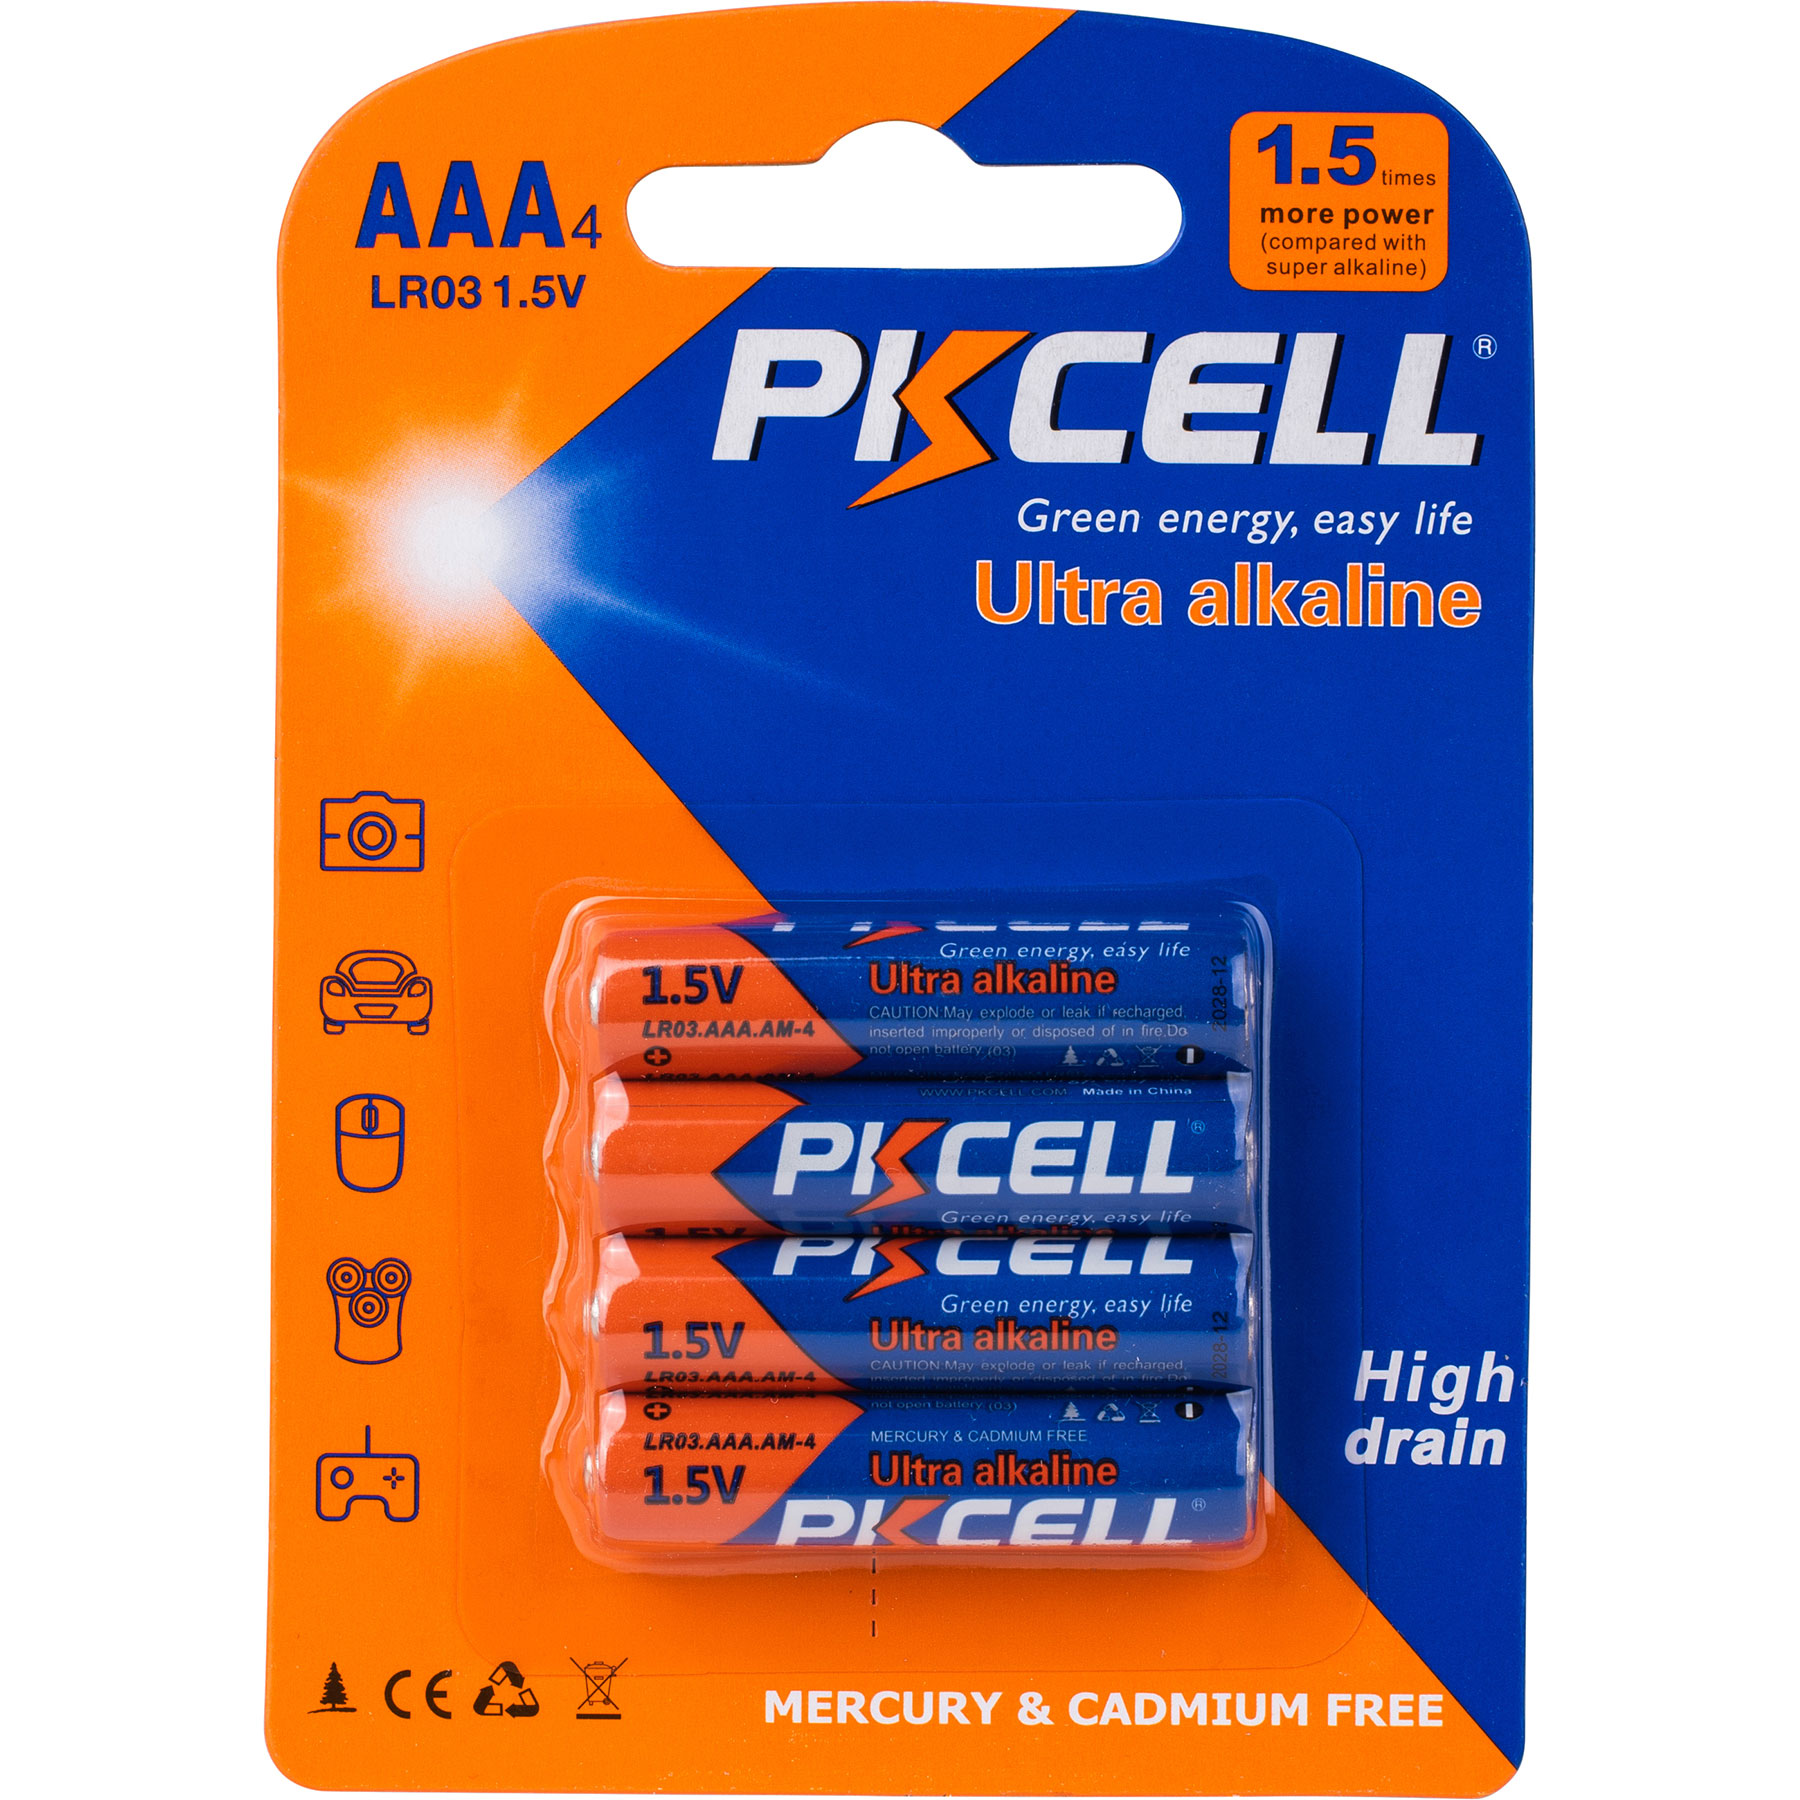 PK CELL AAA X 4 ALKALINE BATTERY